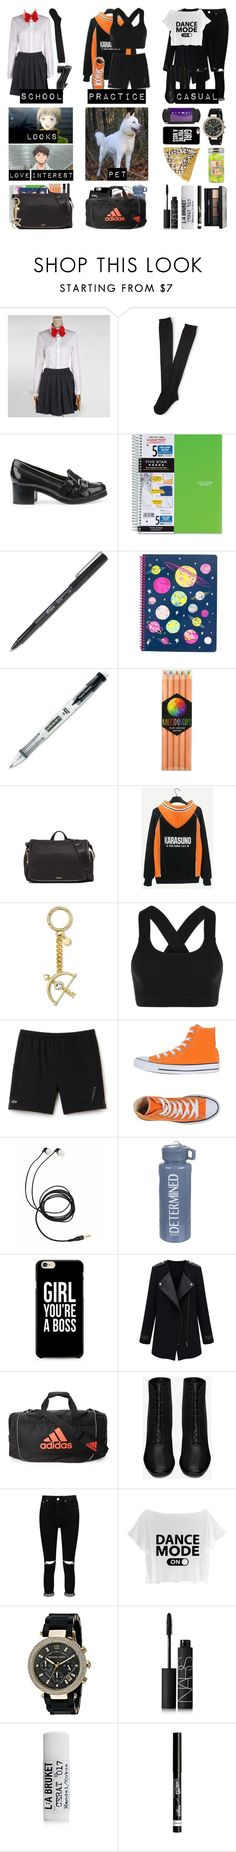 """Haikyuu OC"" by balancewarlord ❤ liked on Polyvore featuring Aéropostale, Geox, Mead, Paper Mate, International Arrivals, Tumi, MICHAEL Michael Kors, Lorna Jane, Lacoste and Converse"